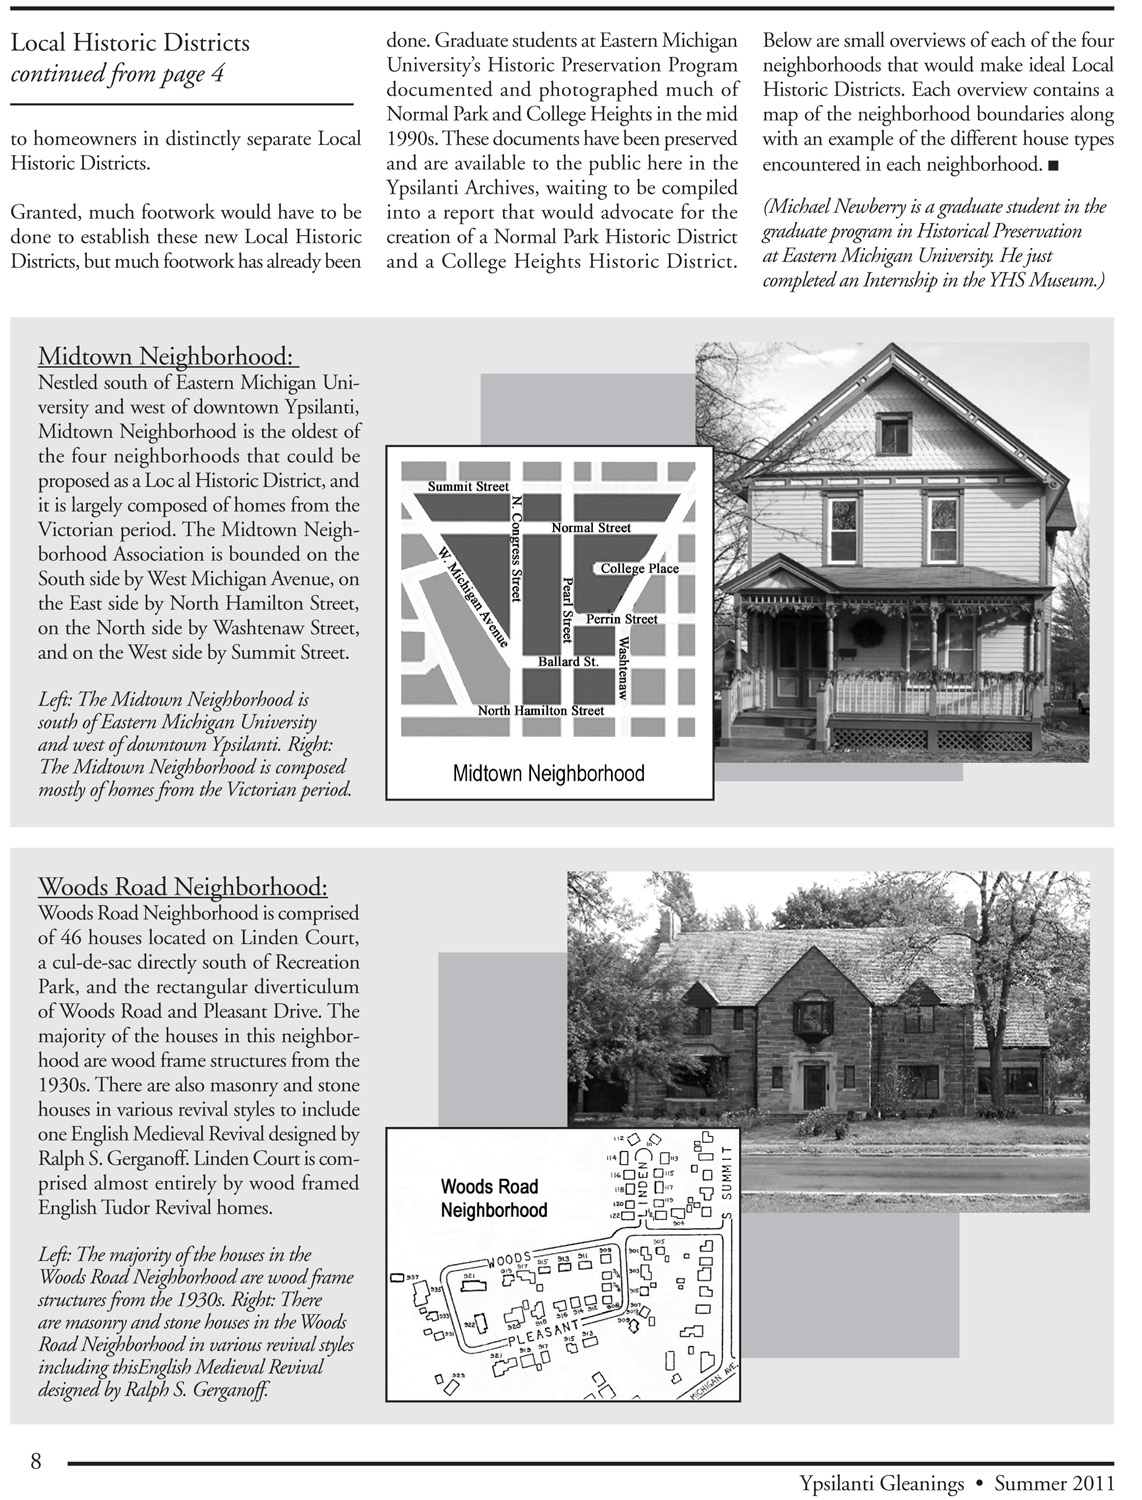 Local Historic Districts image